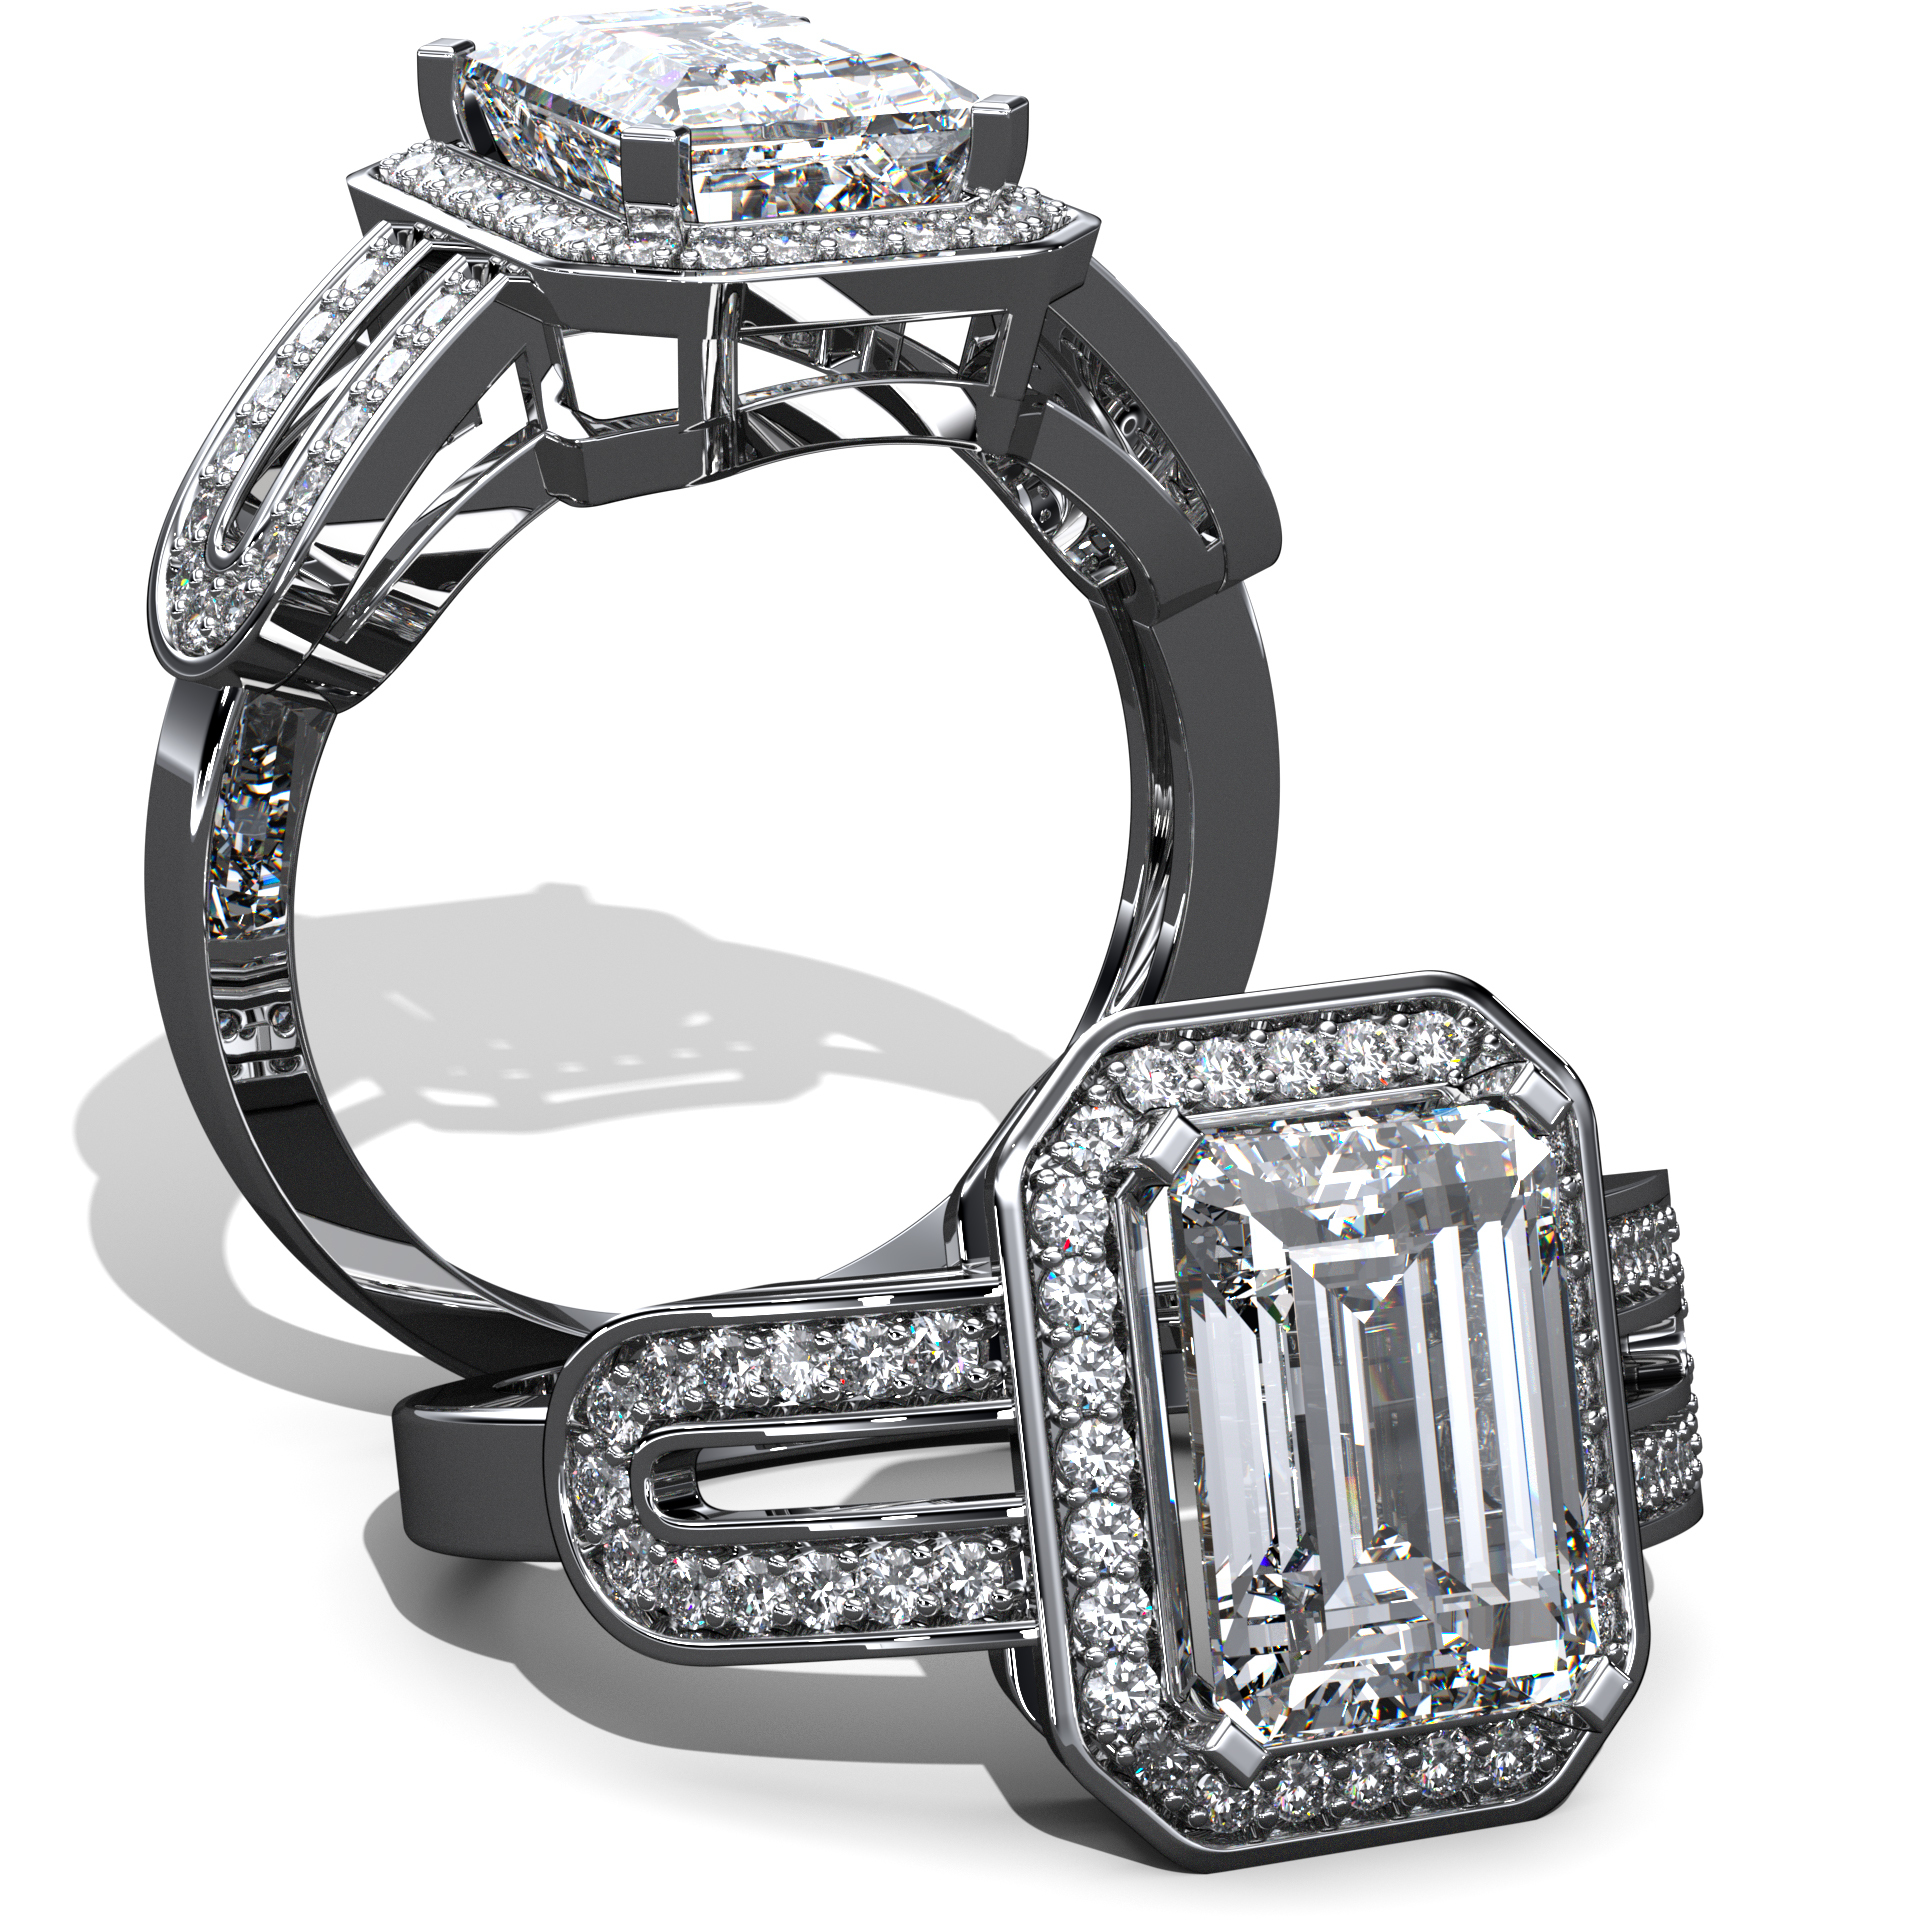 3D Jewelry Design: Emerald Cut Ring » Jewelrythis